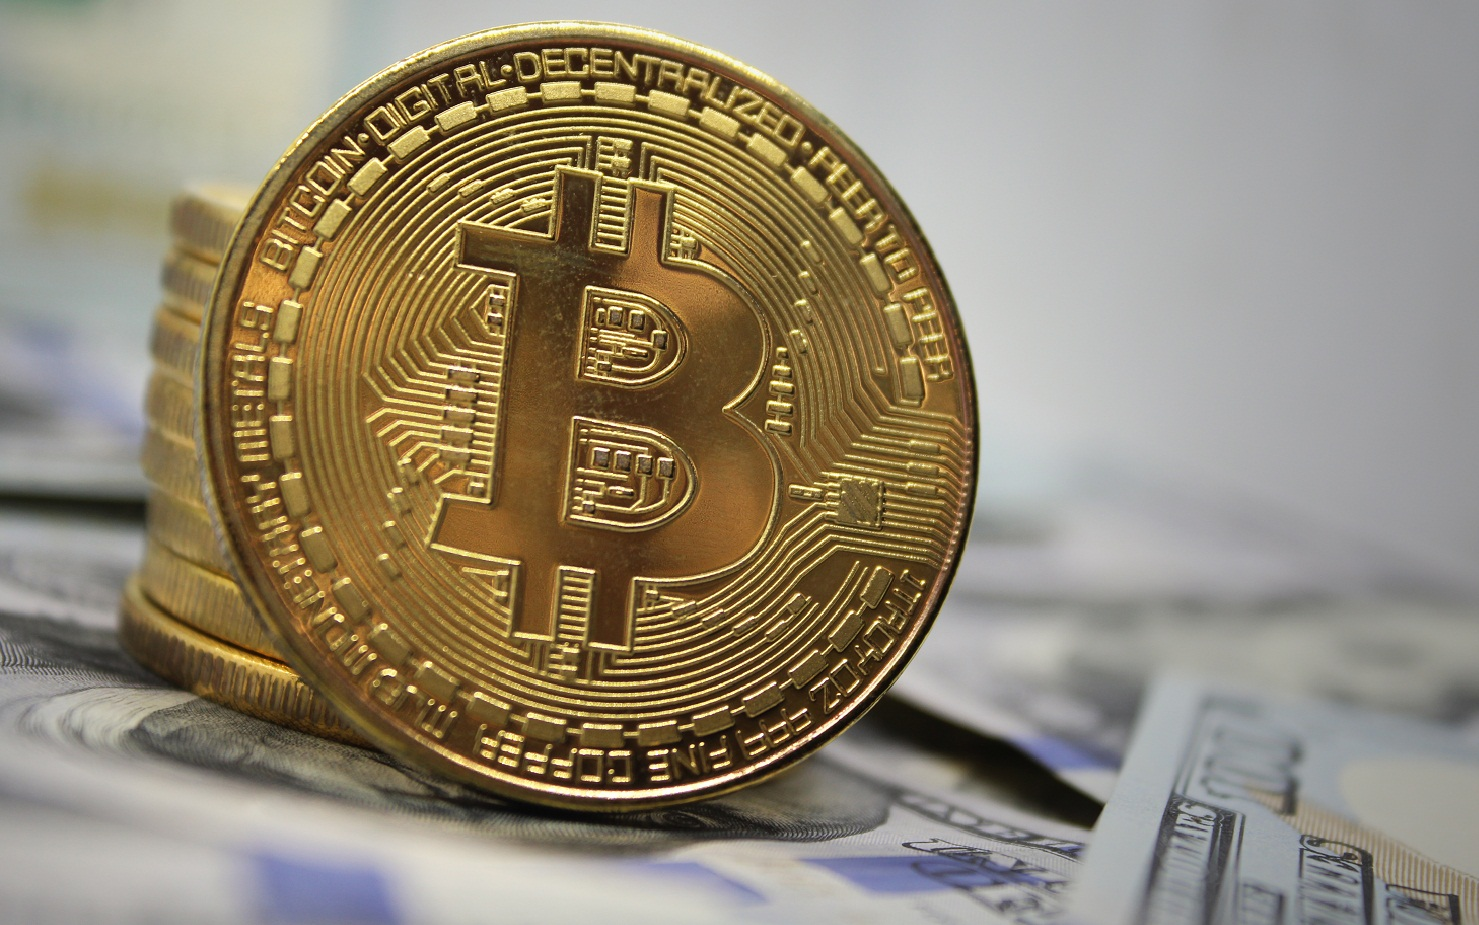 Exchanging Bitcoin Wisely in The Digital Market